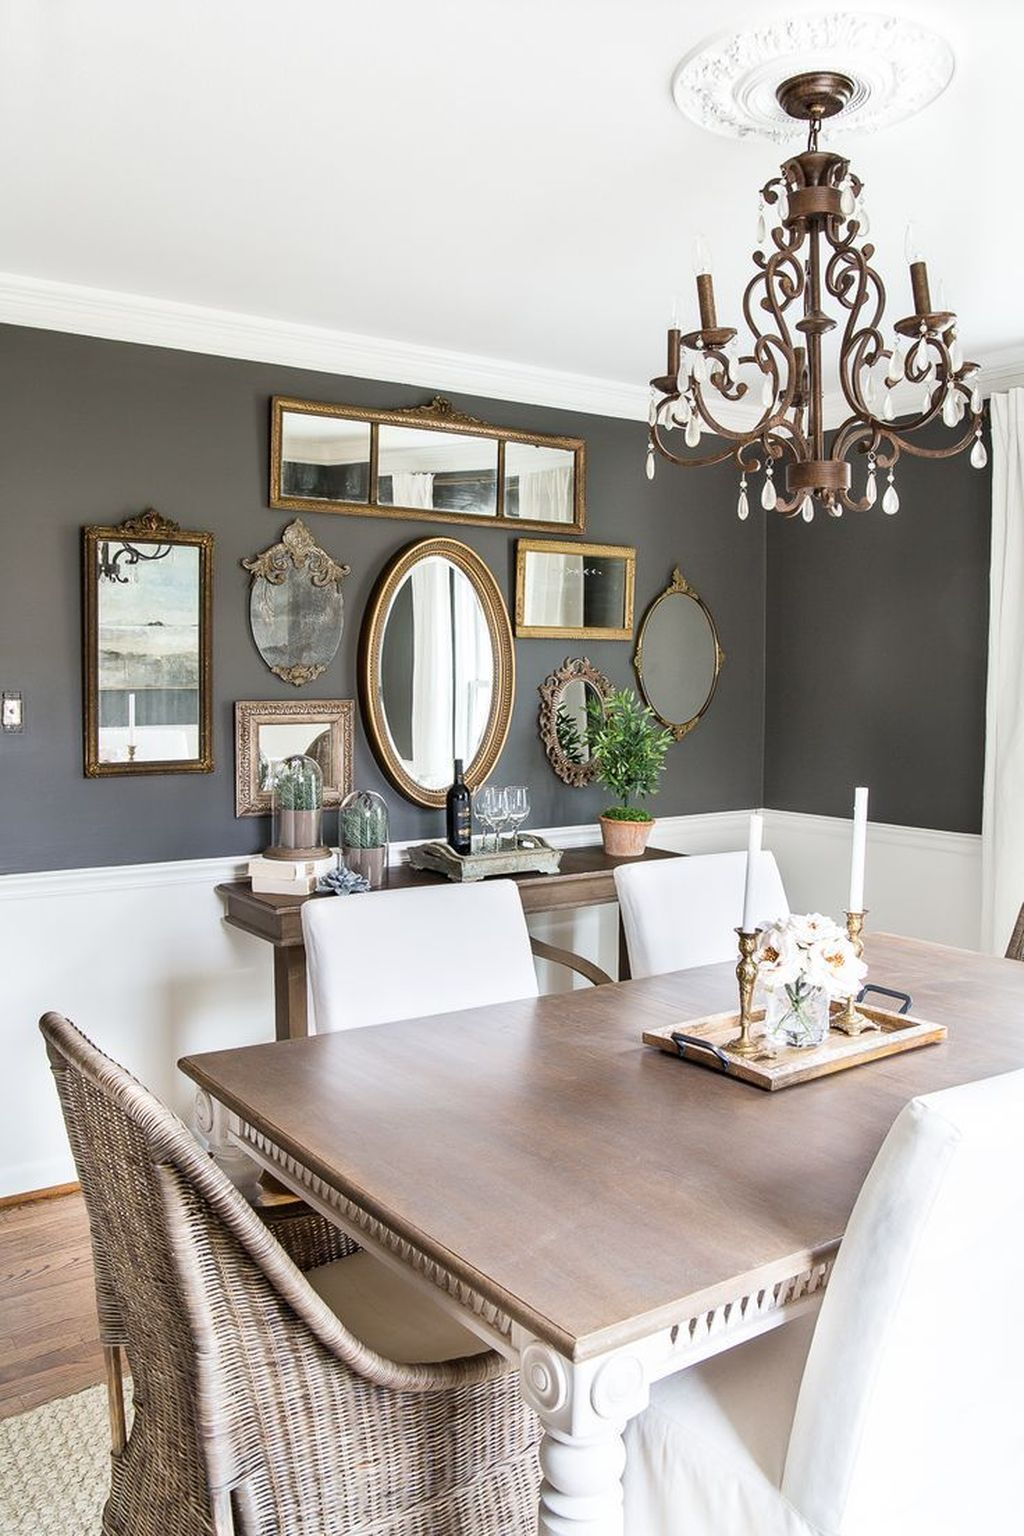 Amazing Wall Mirror Design Ideas For Dining Room Decor 20